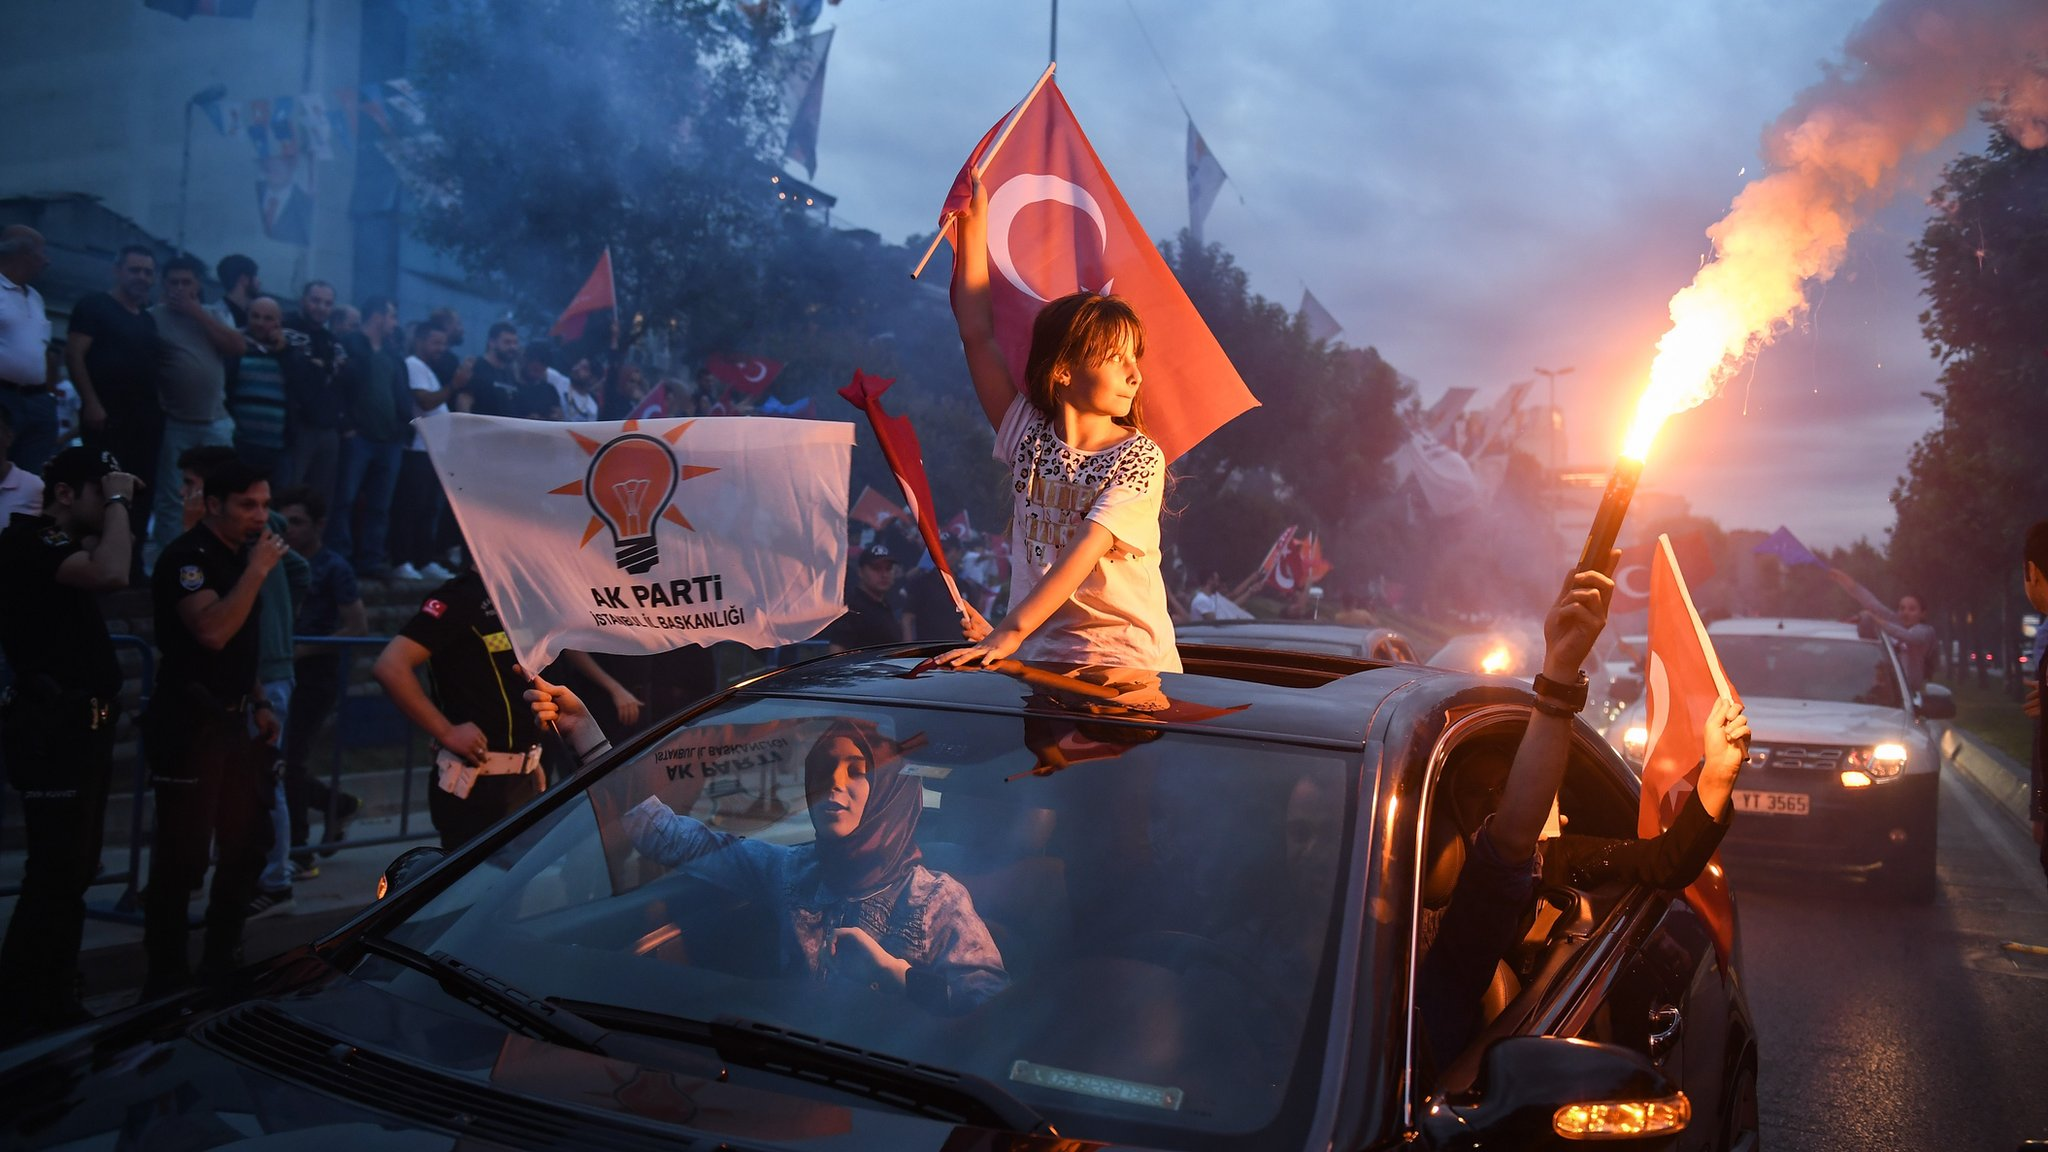 Turkey election: Erdogan claims victory with unofficial results